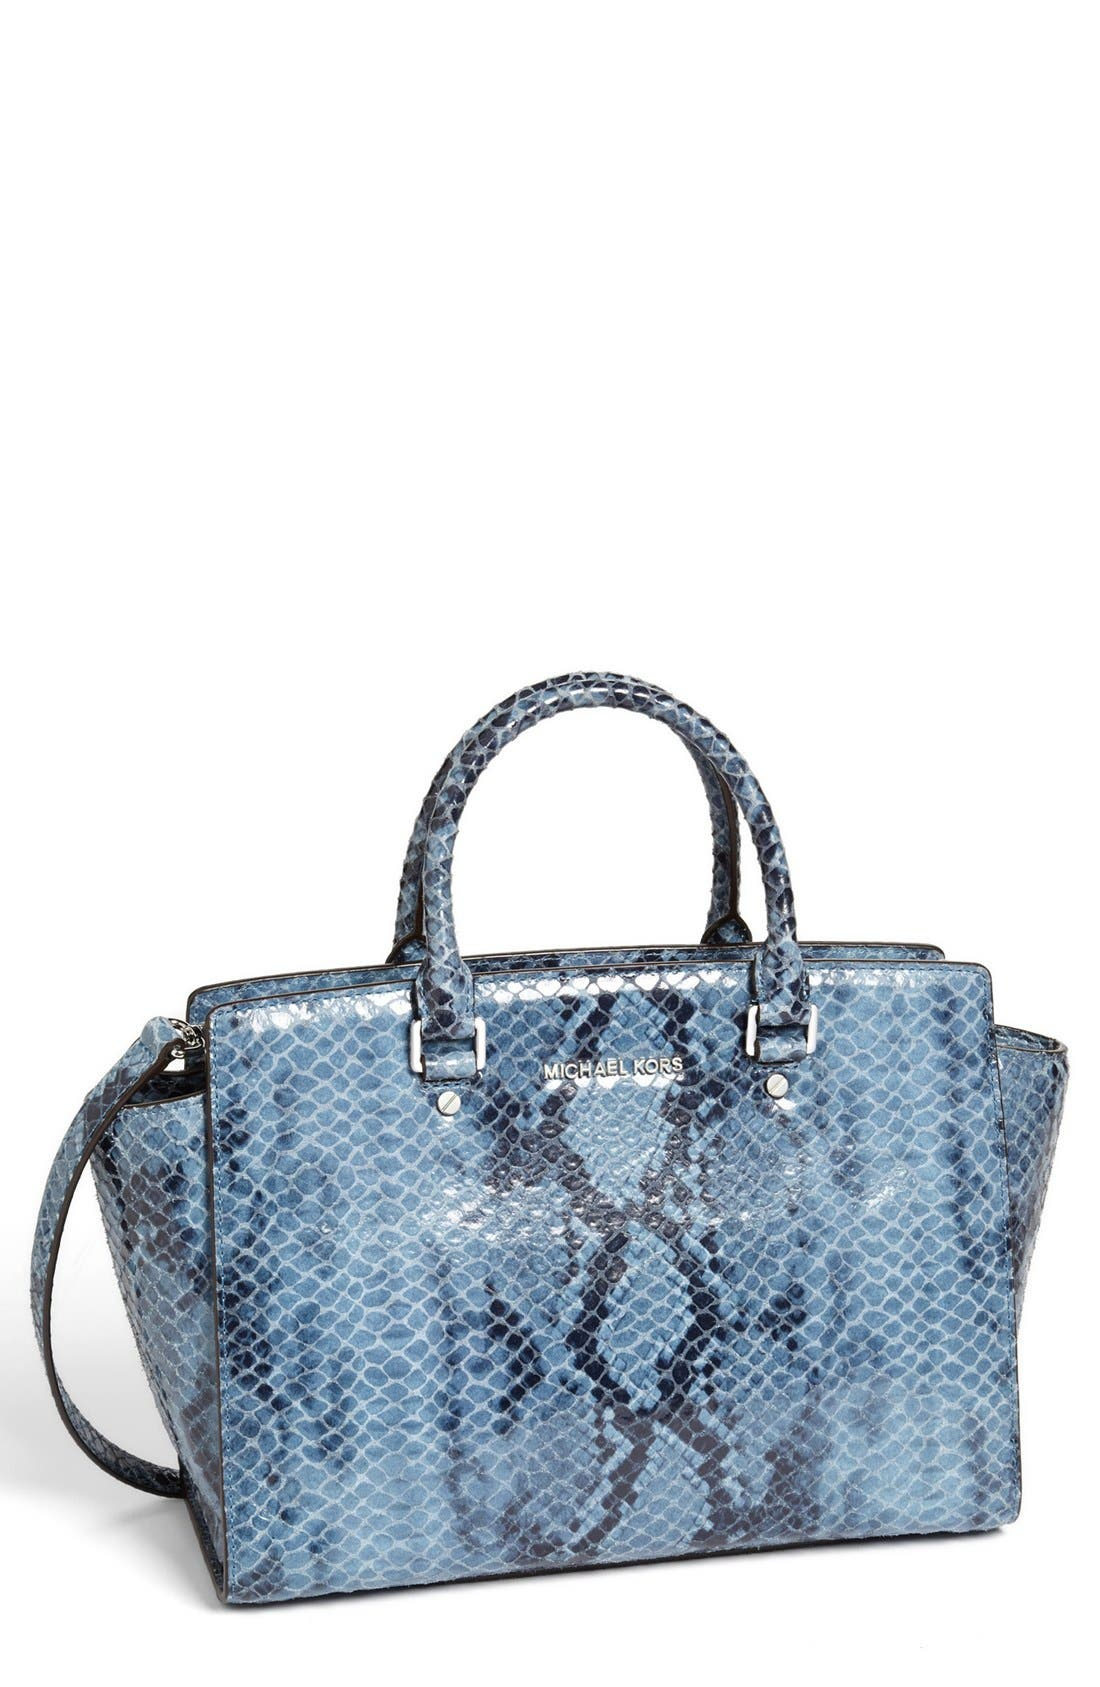 Alternate Image 1 Selected - MICHAEL Michael Kors 'Large Selma' Snake Embossed Leather Satchel